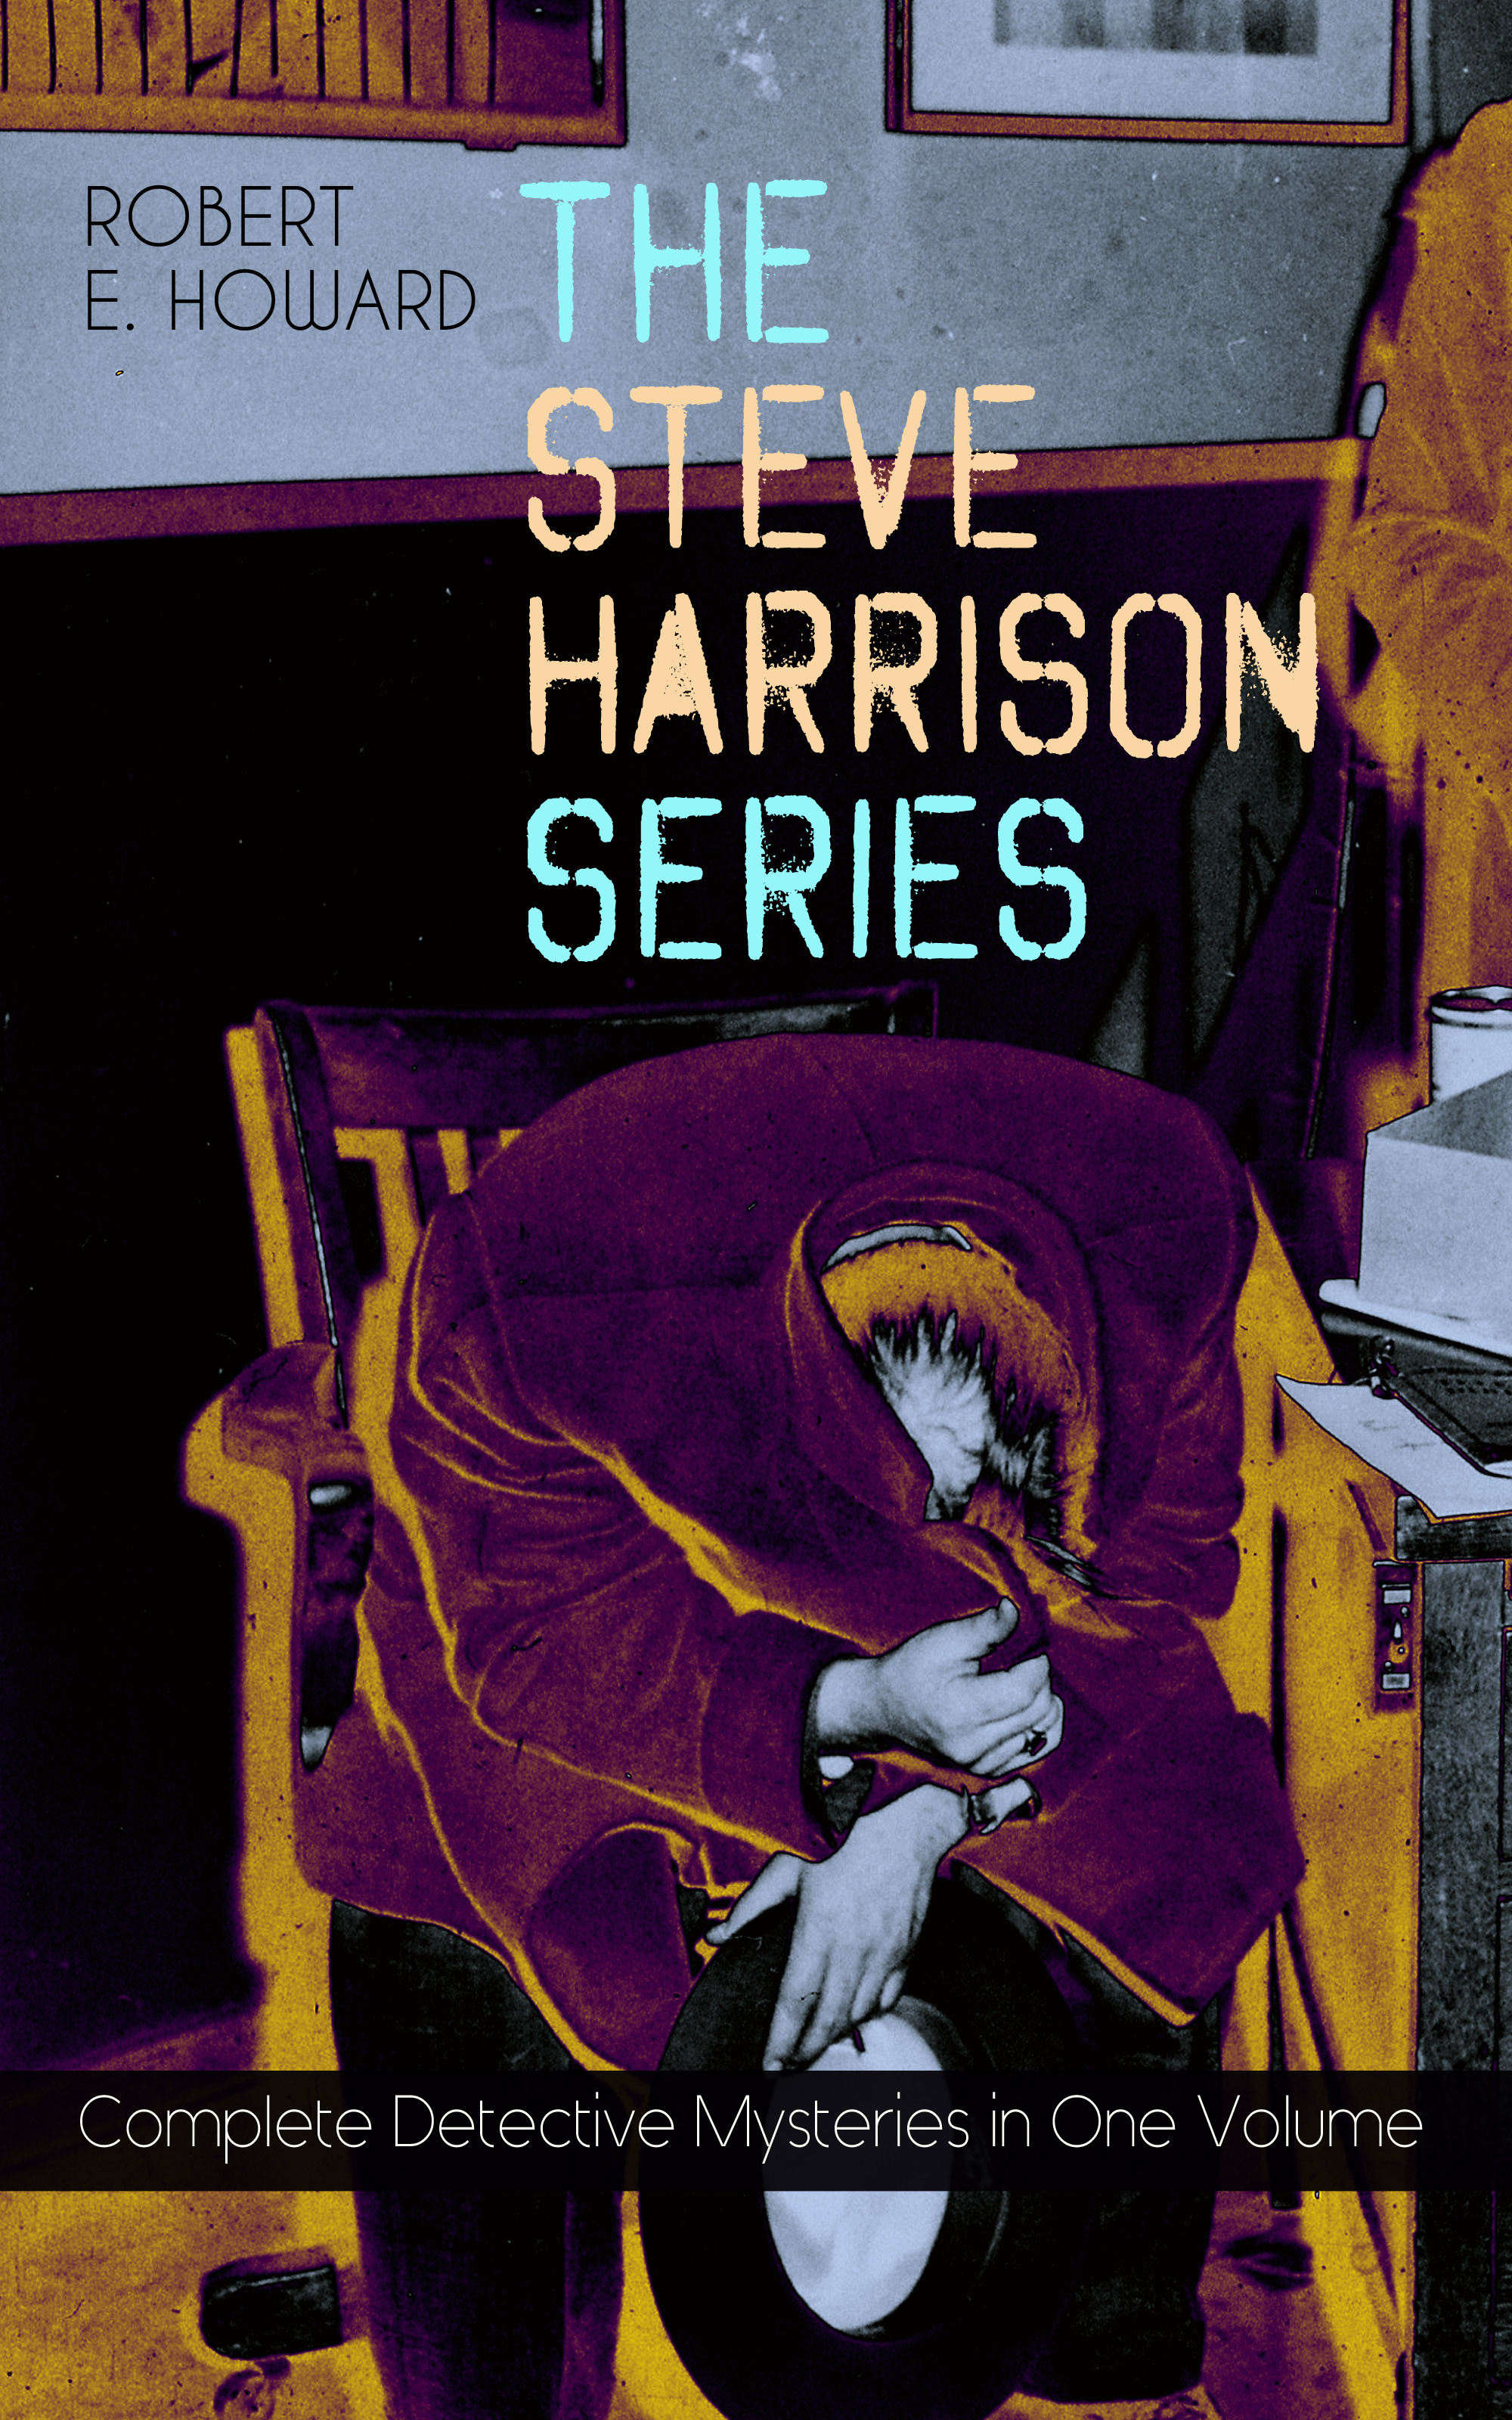 Robert E. Howard THE STEVE HARRISON SERIES – Complete Detective Mysteries in One Volume anna katharine green the mysteries of violet strange complete whodunit series in one edition